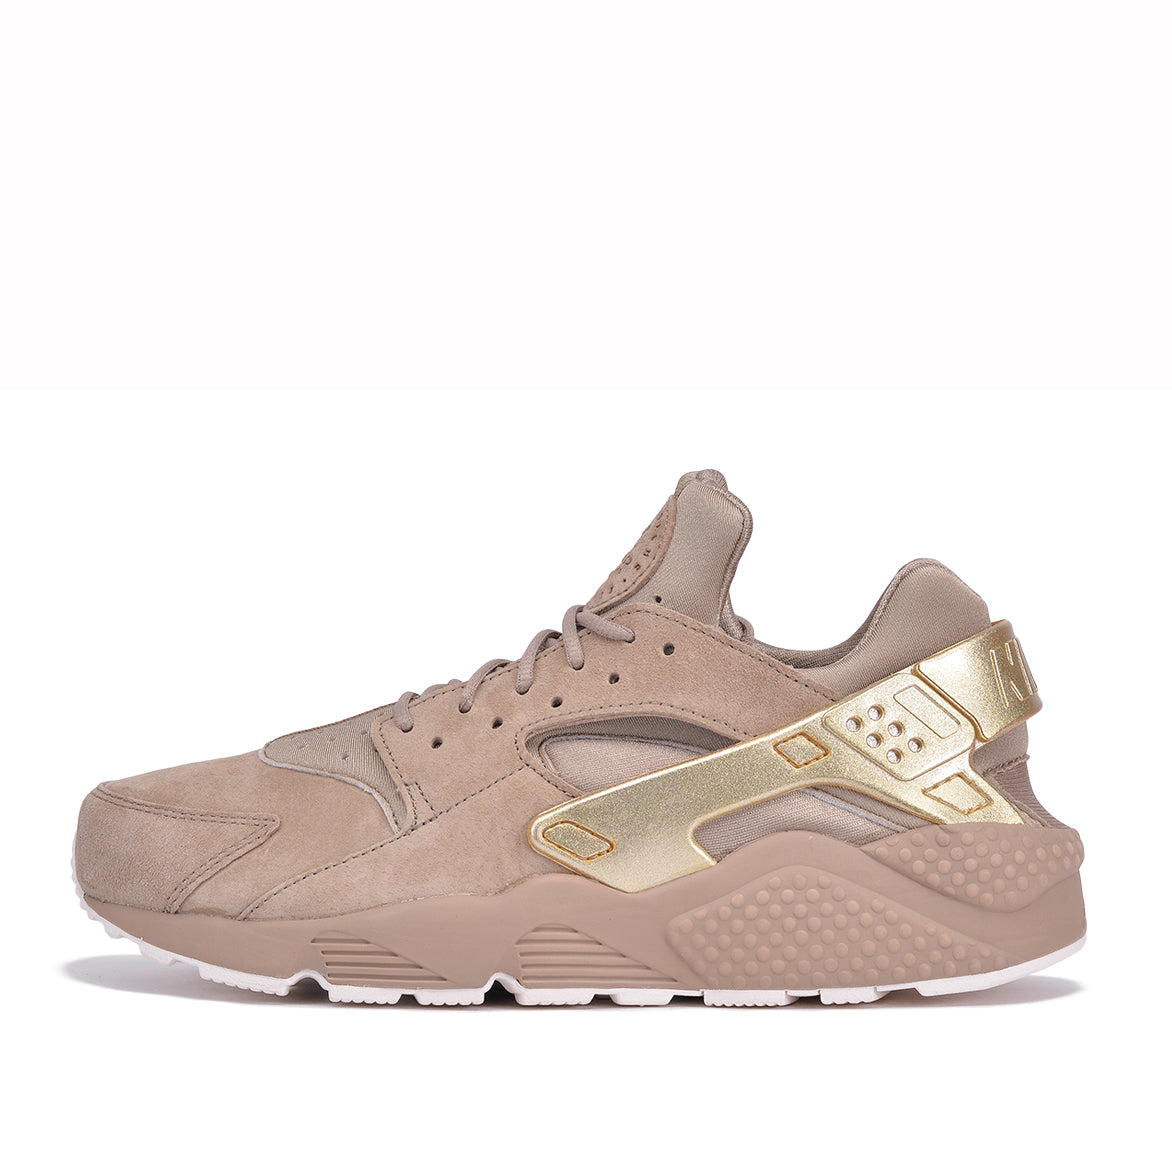 a4a94131b9ce AIR HUARACHE RUN PRM - KHAKI   METALLIC GOLD COIN